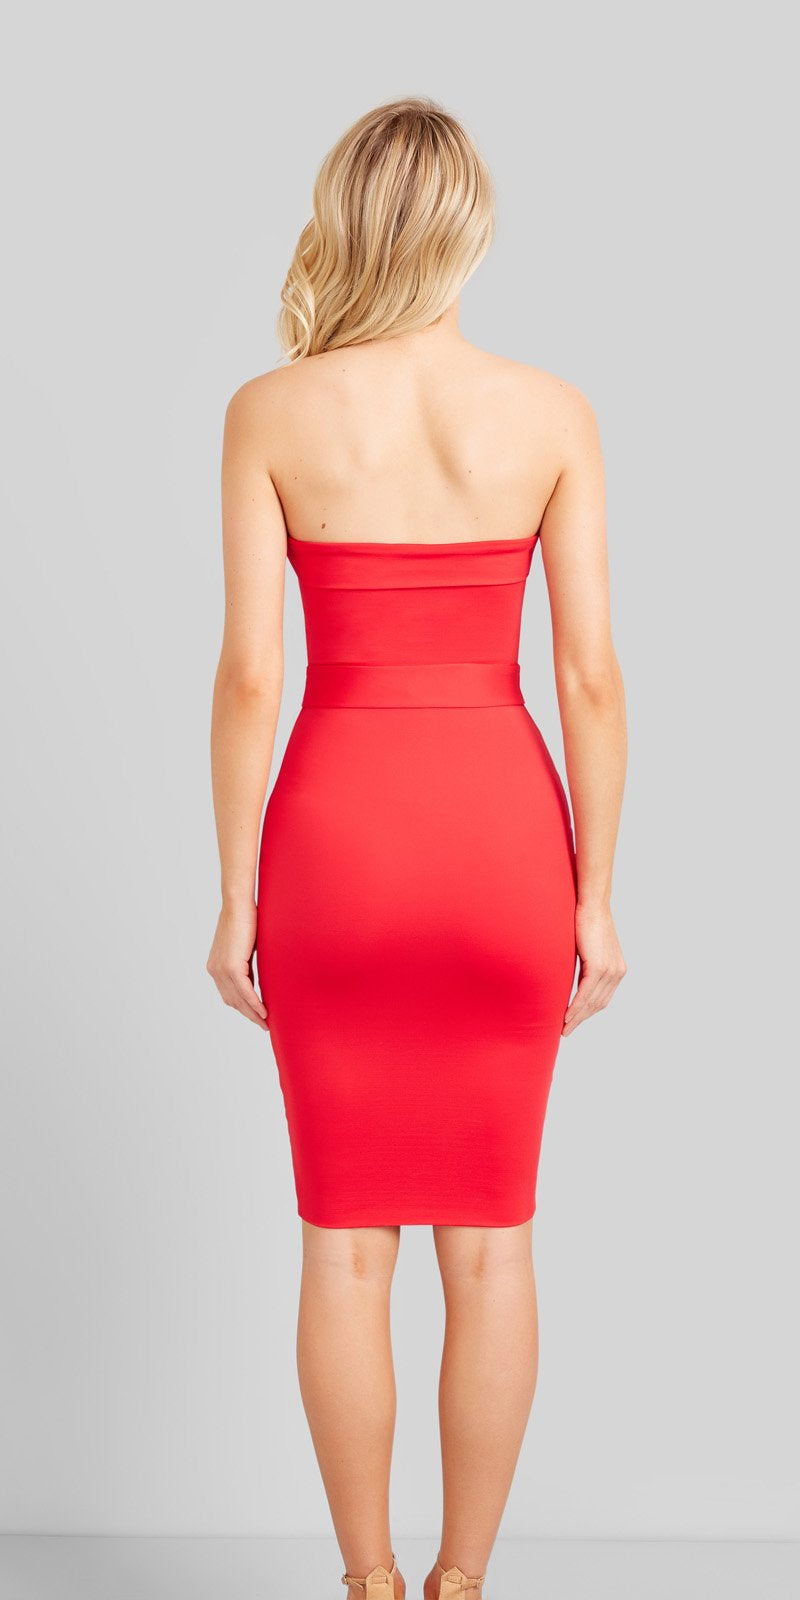 Kookai Oakley Dress - Red - Dress Hire NZ